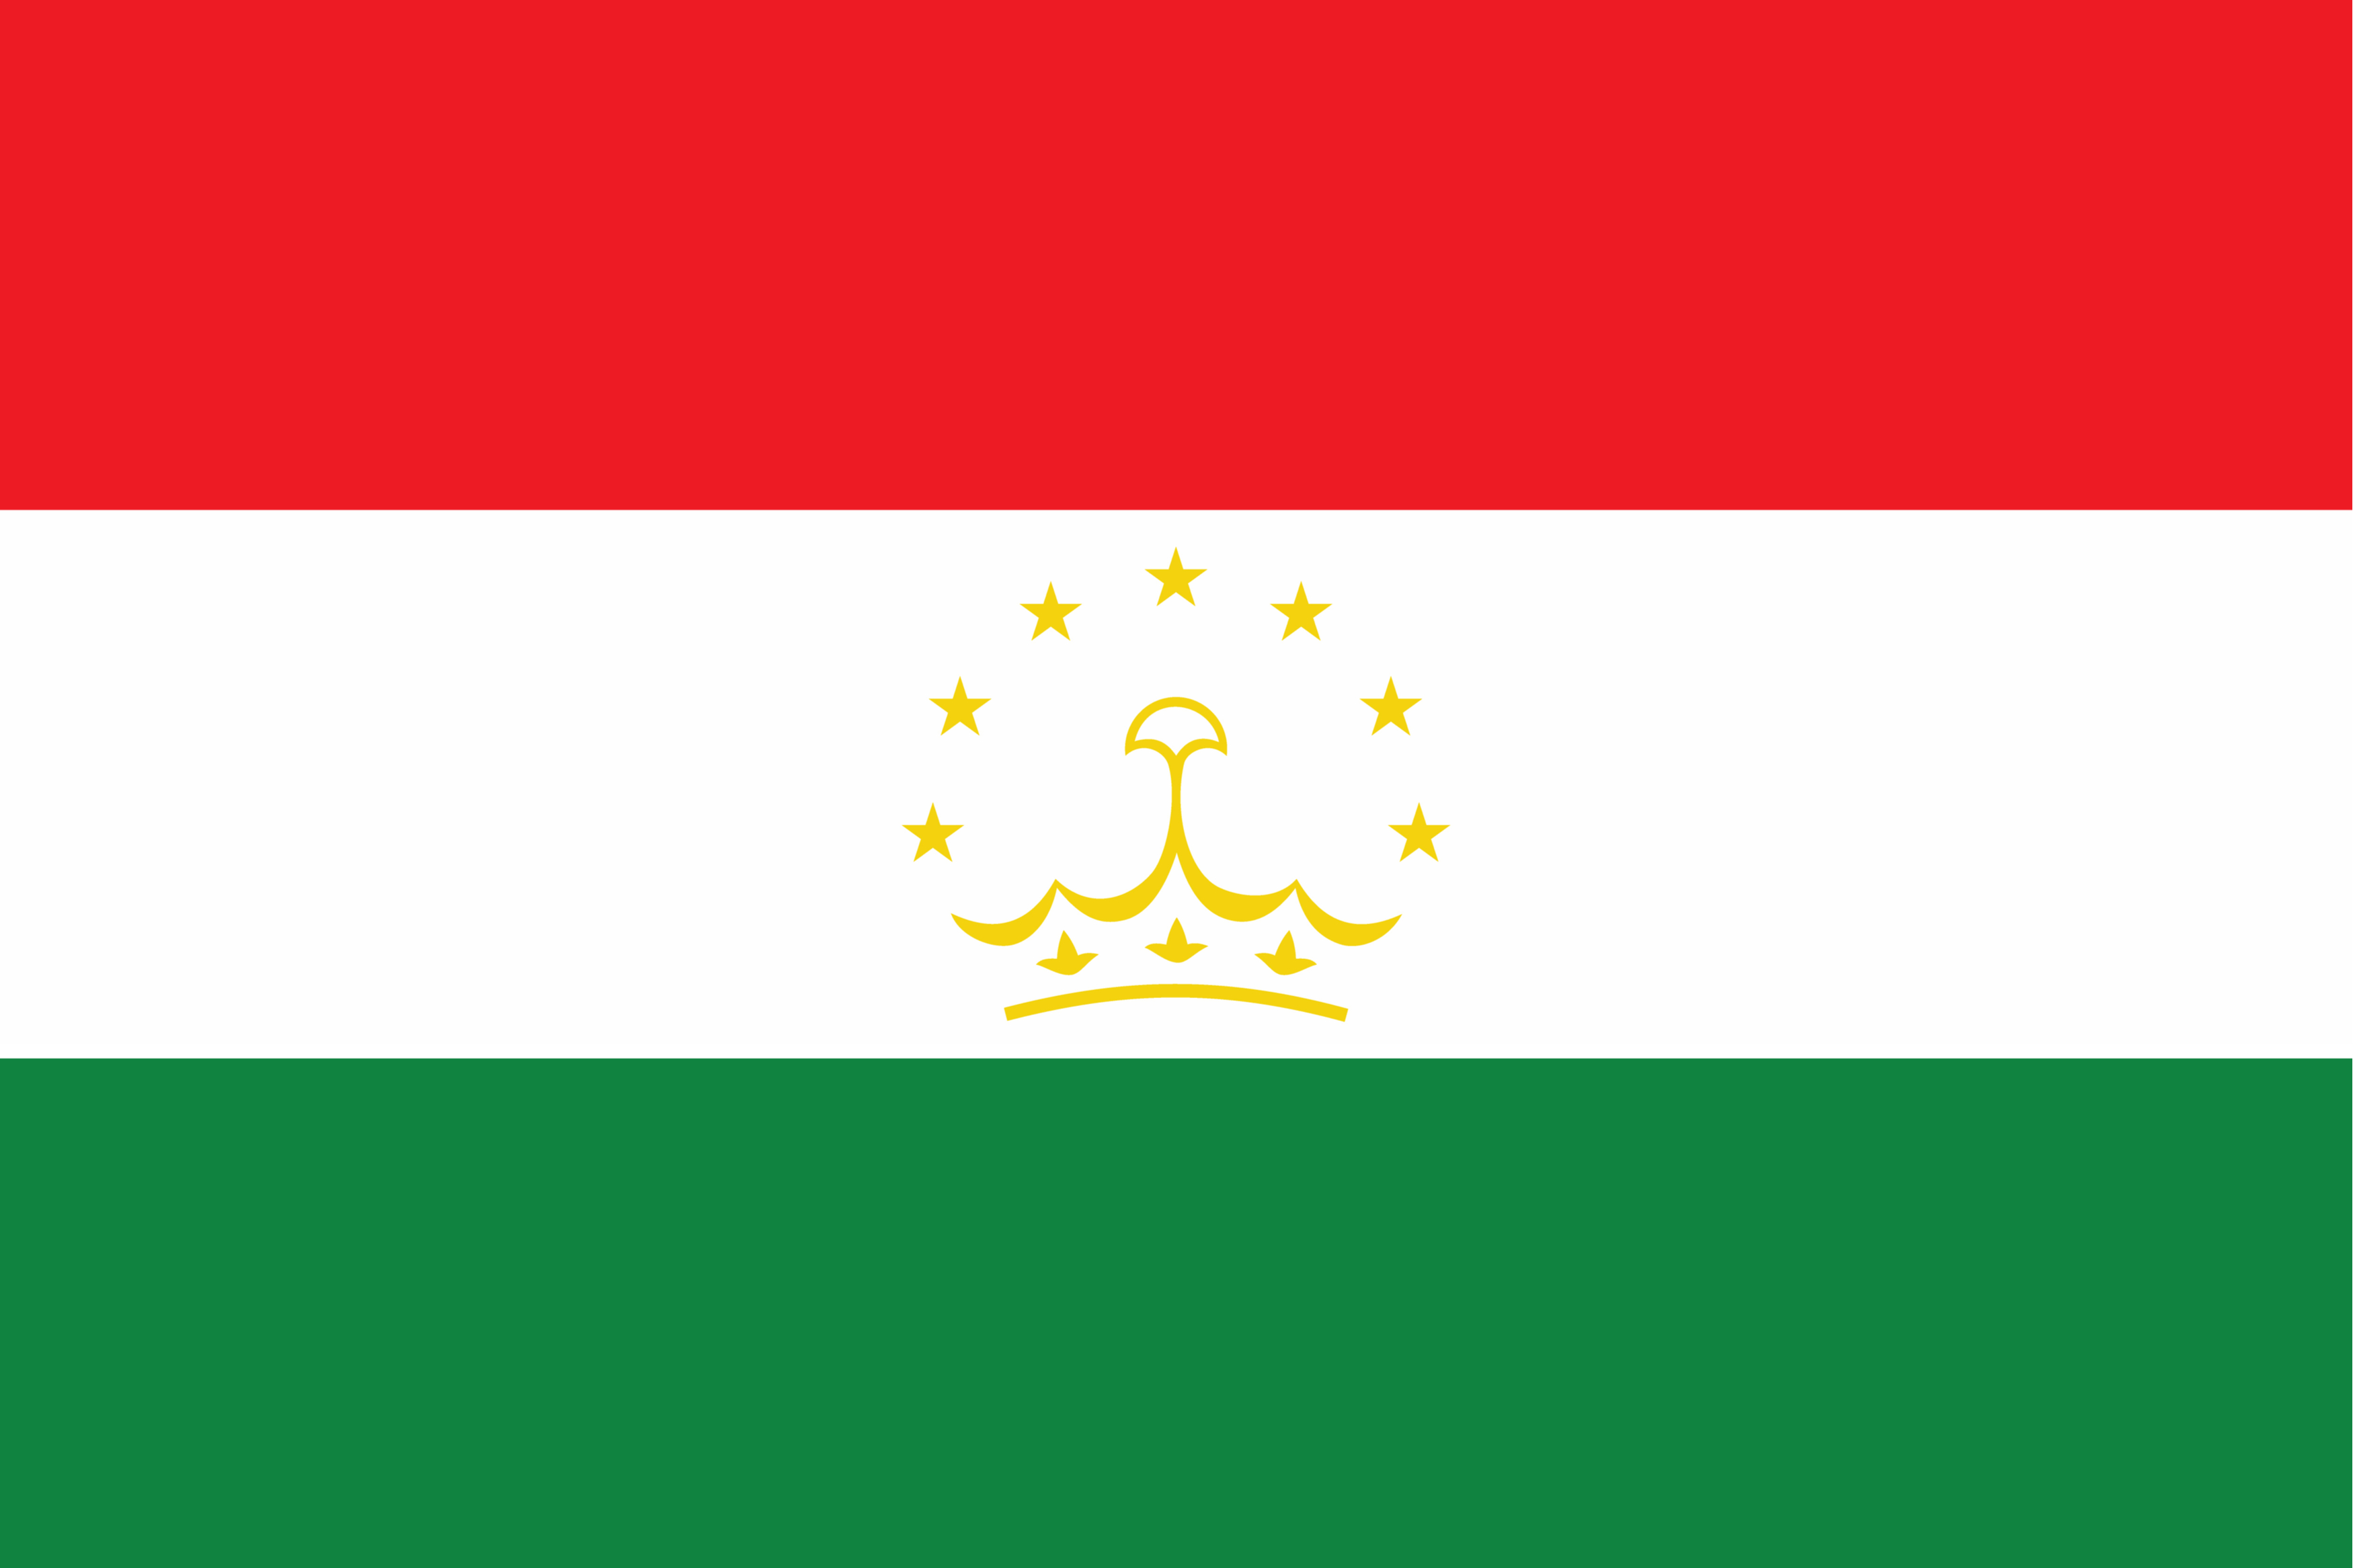 The flag of Tajikistan.